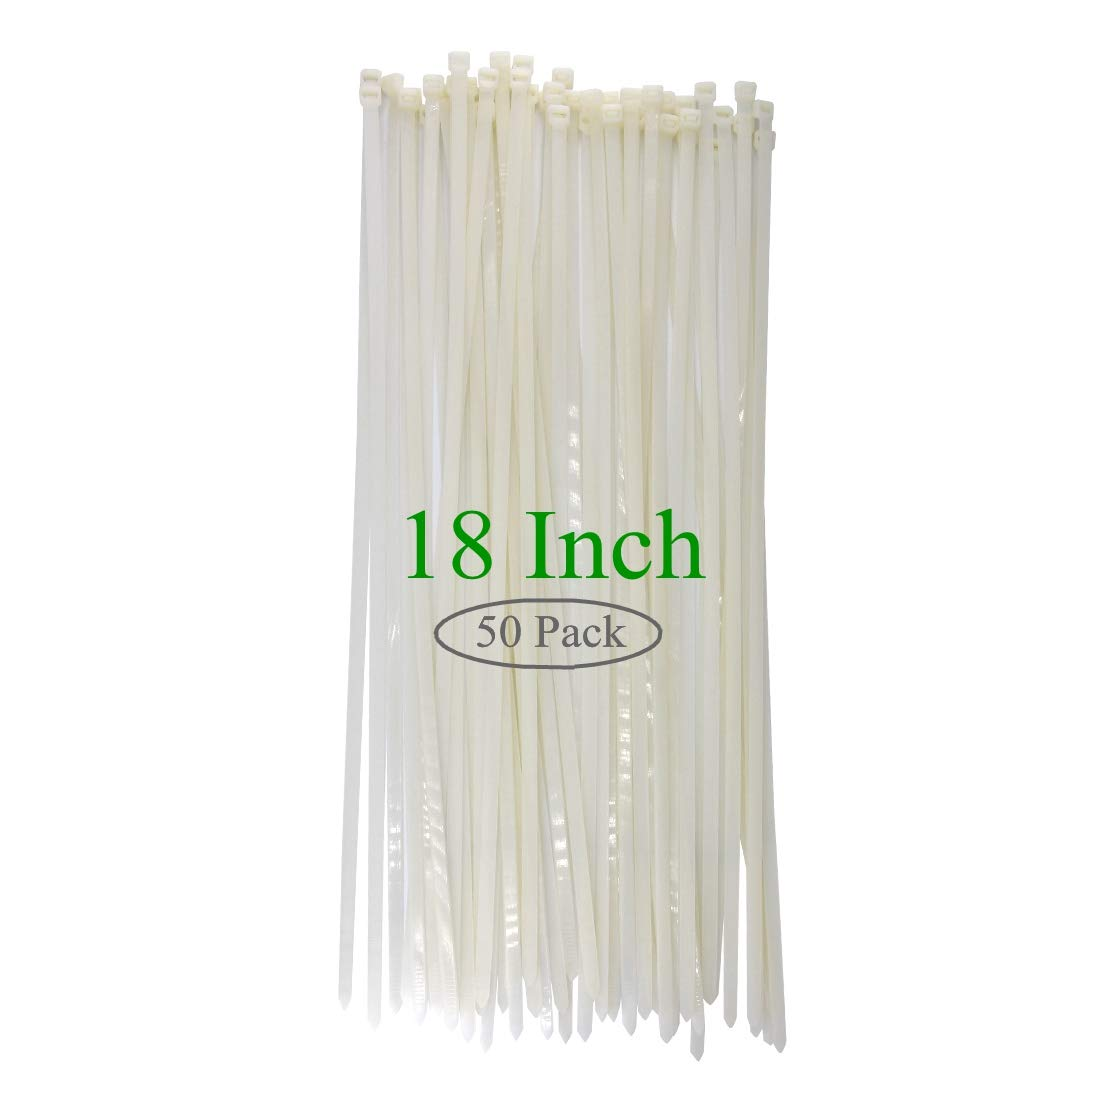 Long Wide 18 Inch Nylon Zip Cable Ties Clear -Large 120LB Tensile Strength-Heavy Duty Industrial Durable Strong Cable Ties- 50 Pack - Indoor Outdoor Garden Use(18'',120LB, White)